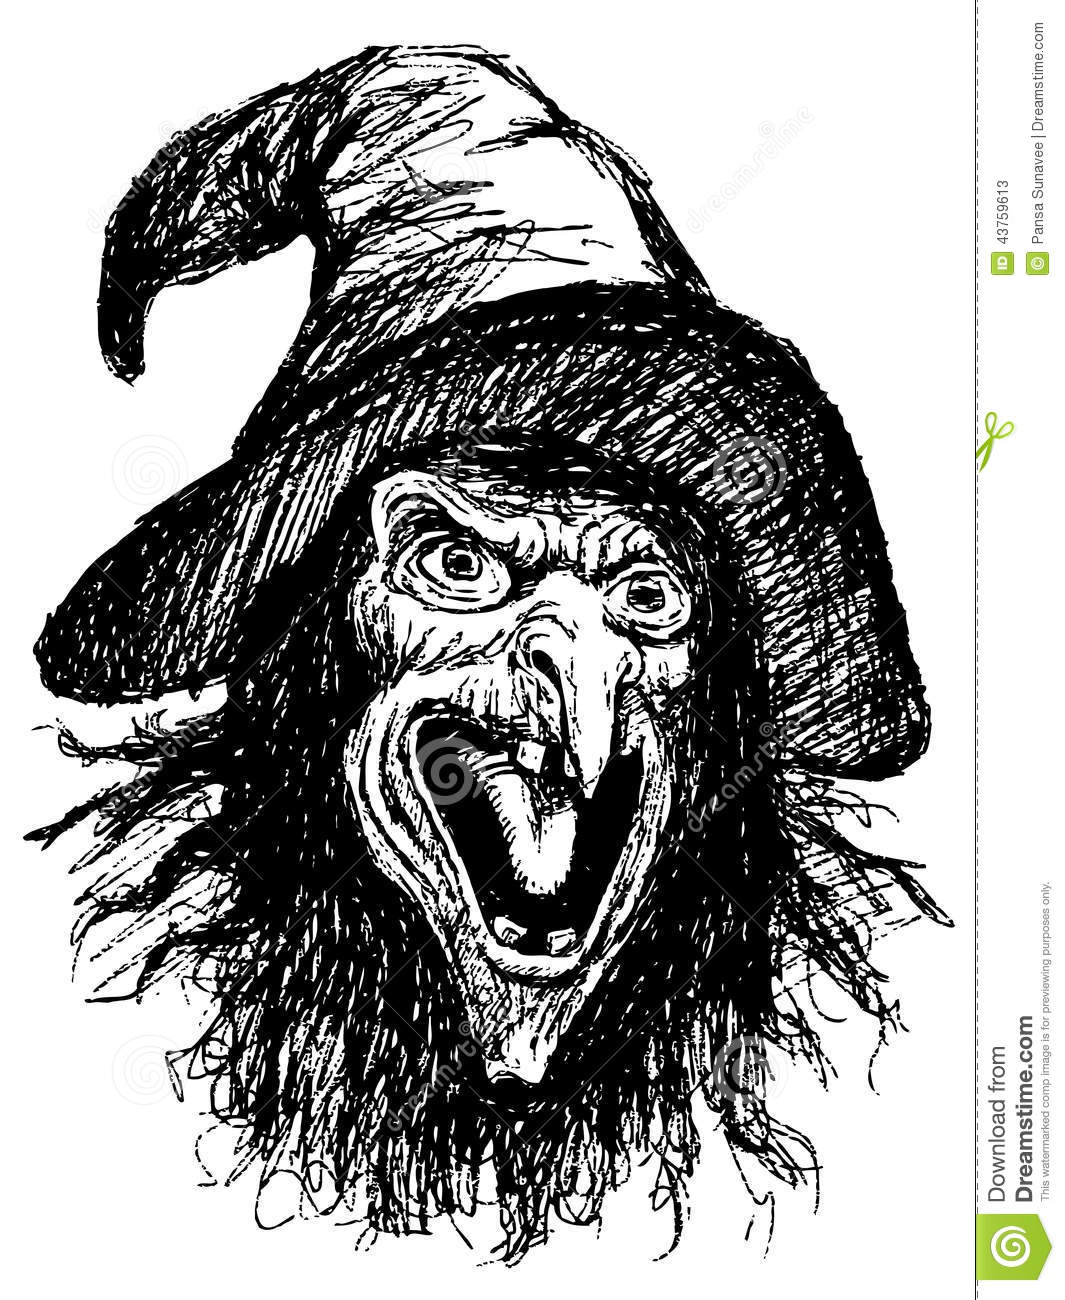 Line Drawing Of Witches Face : Stock photos face of witch image